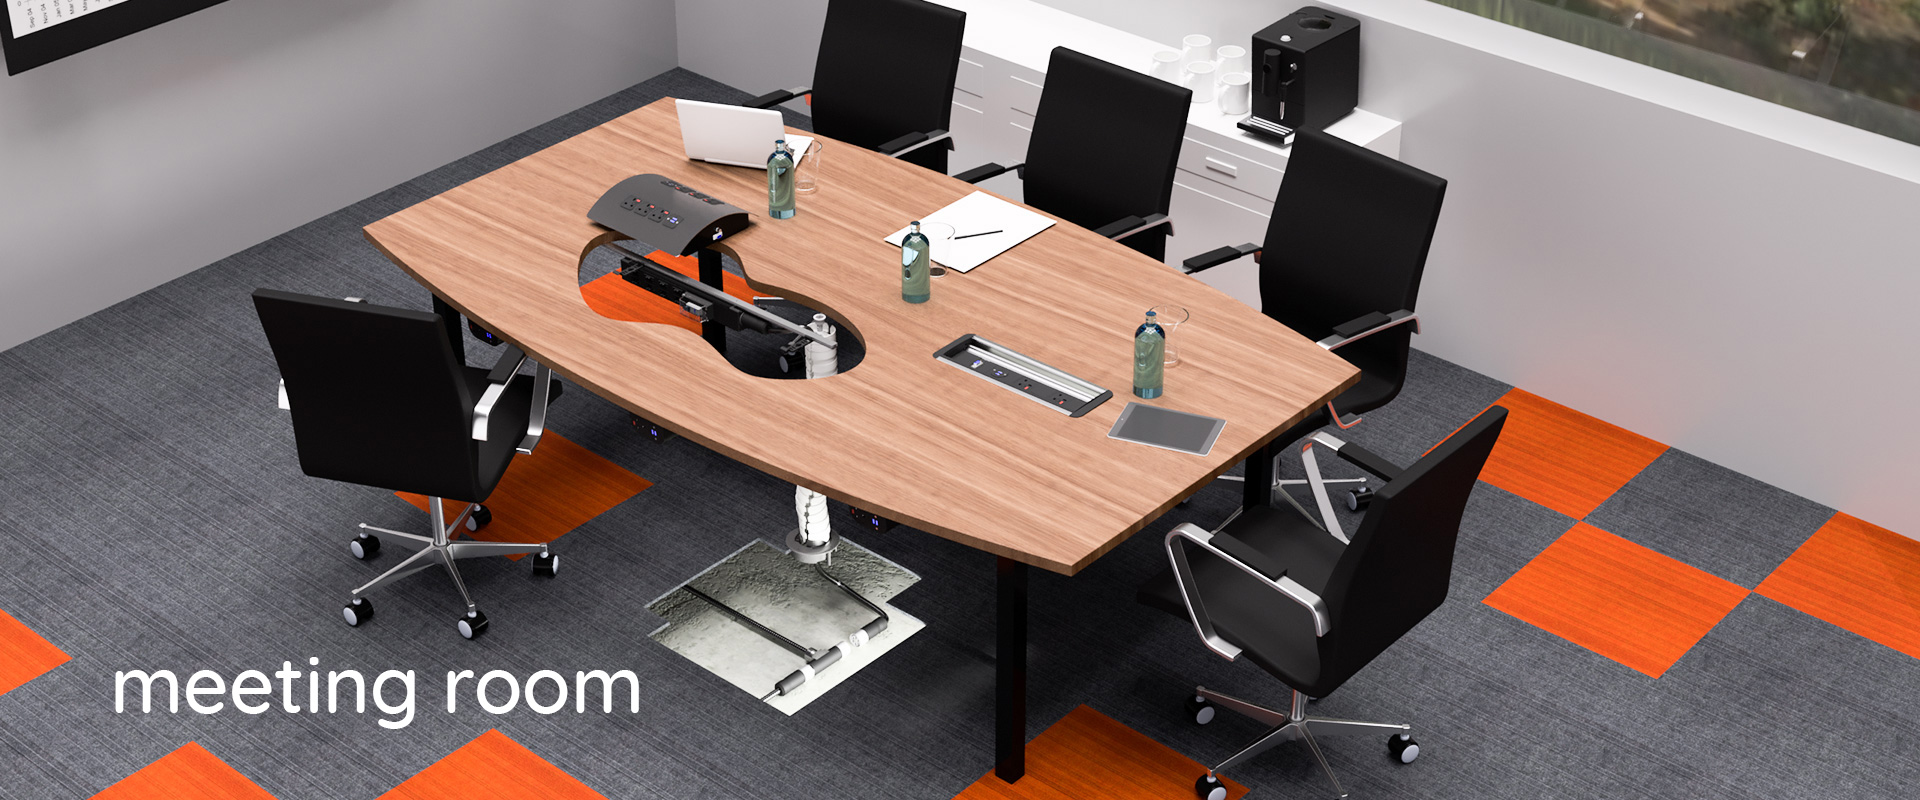 Outstanding Meeting Room Board Room Table Power Data Usb Charging Home Interior And Landscaping Ponolsignezvosmurscom